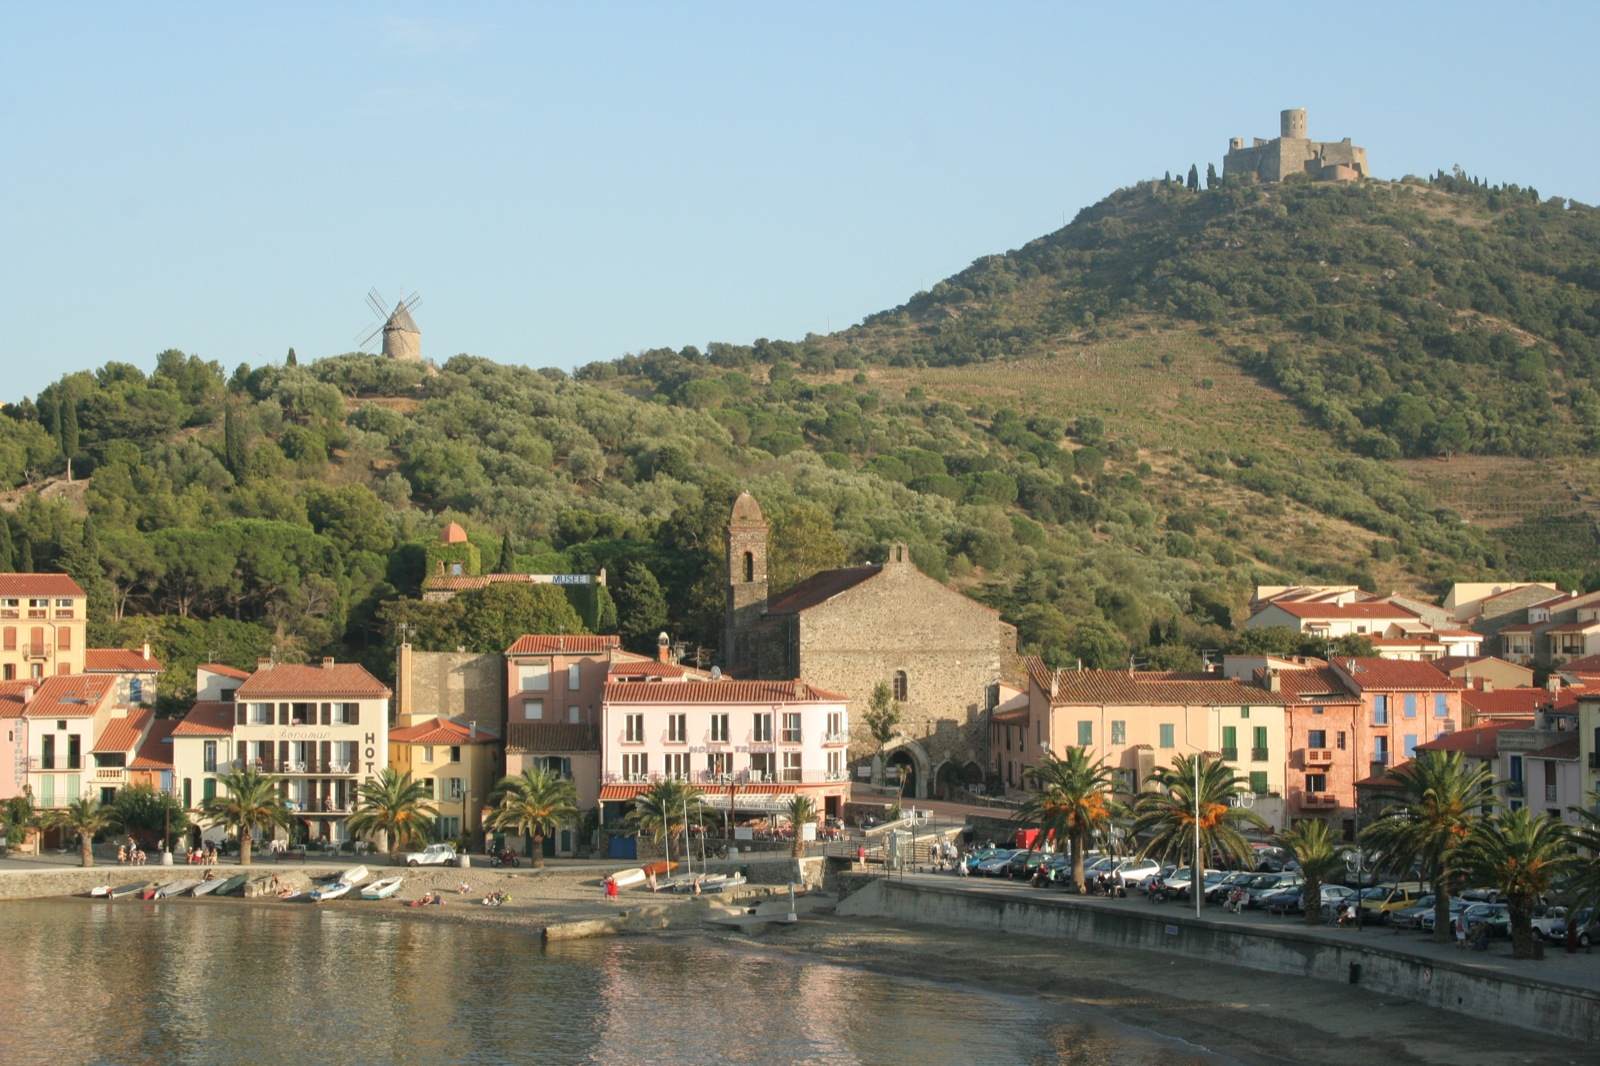 File:Collioure, France.jpg - Wikimedia Commons